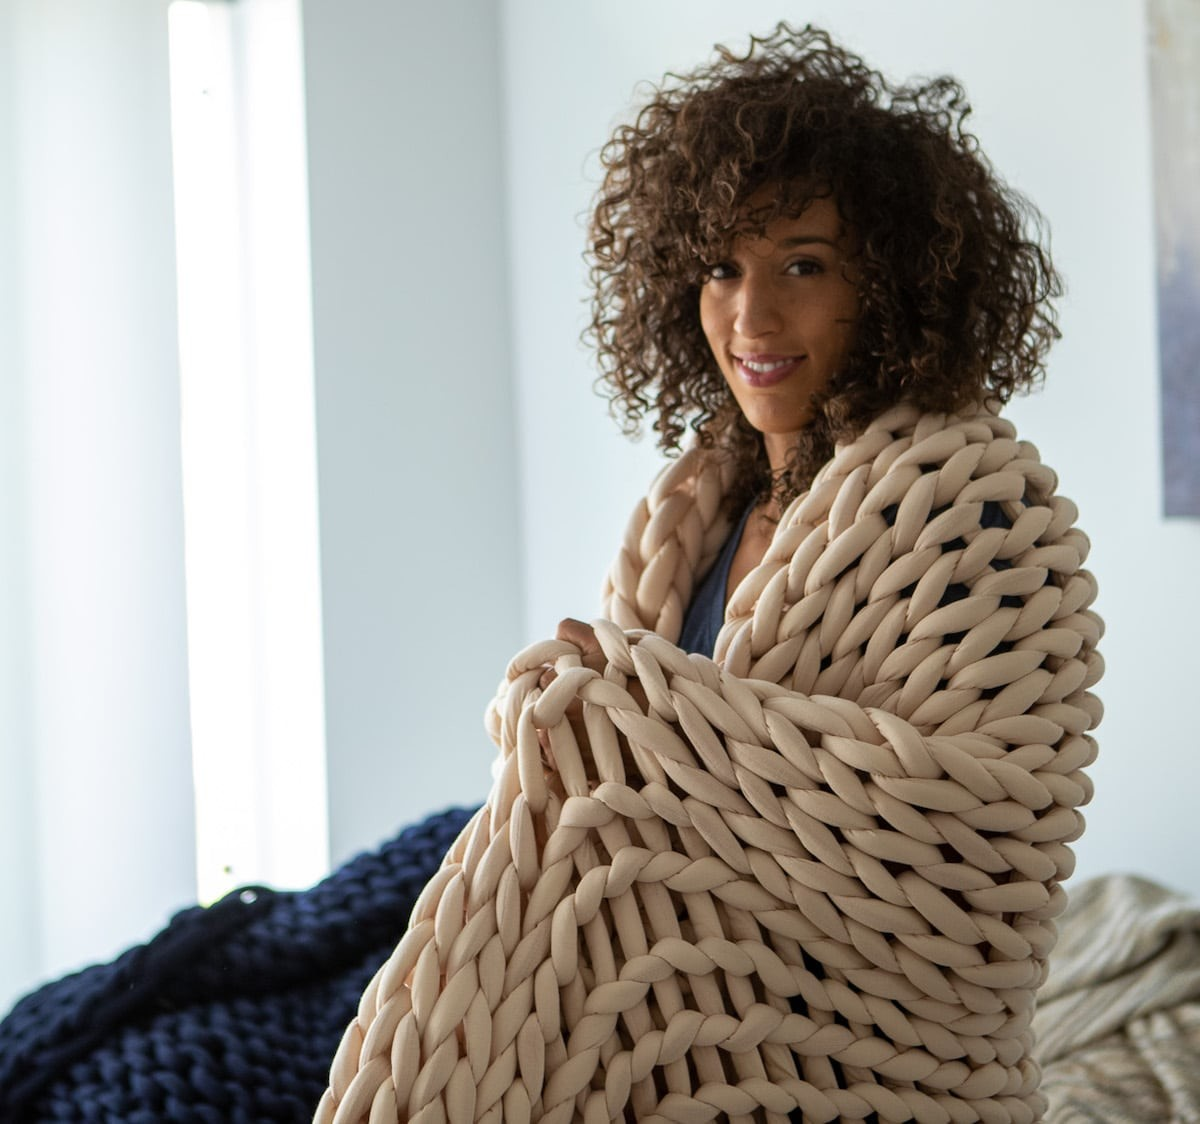 Nuzzie Knit weighted blanket relieves stress while keeping you so cozy